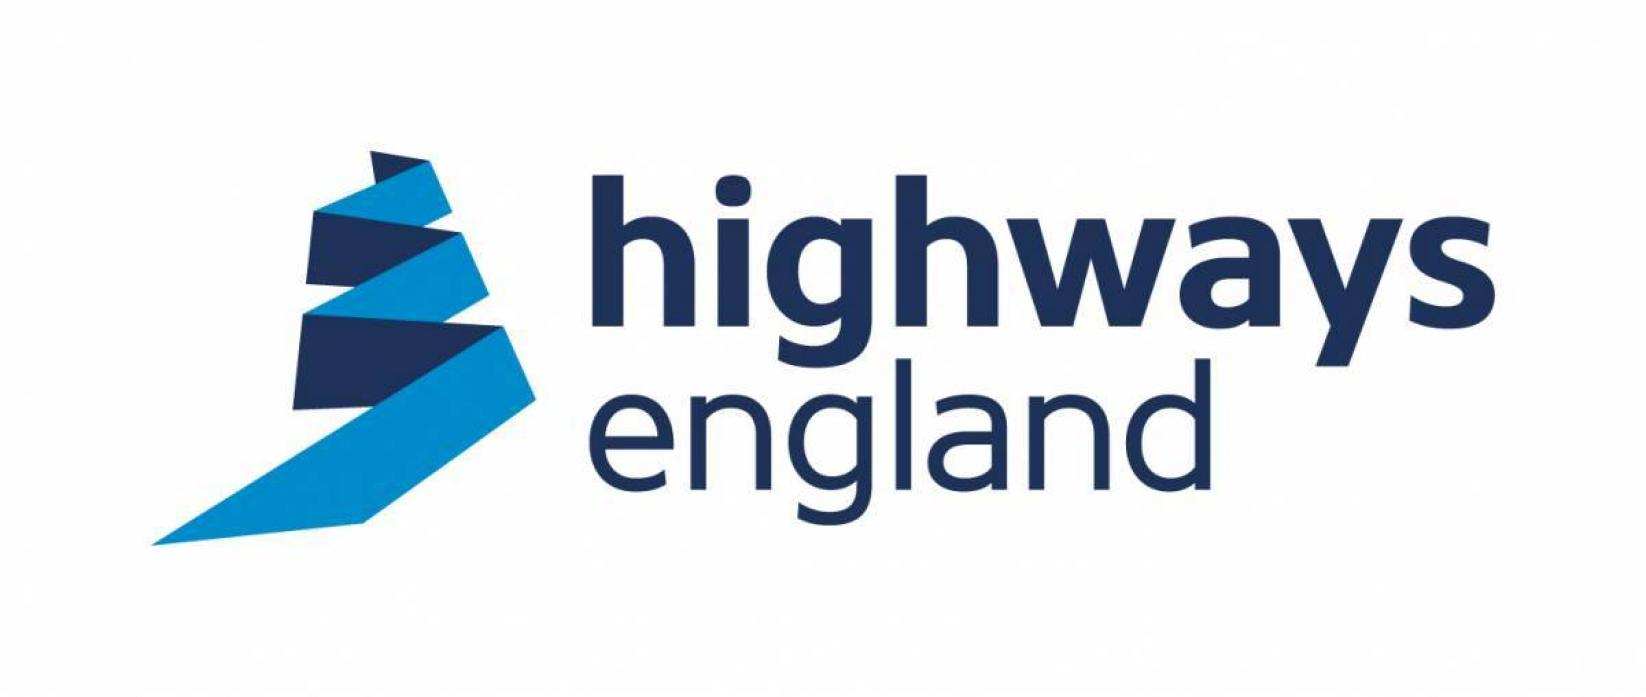 Highways England will not be closing the A66 for roadworks this weekend.